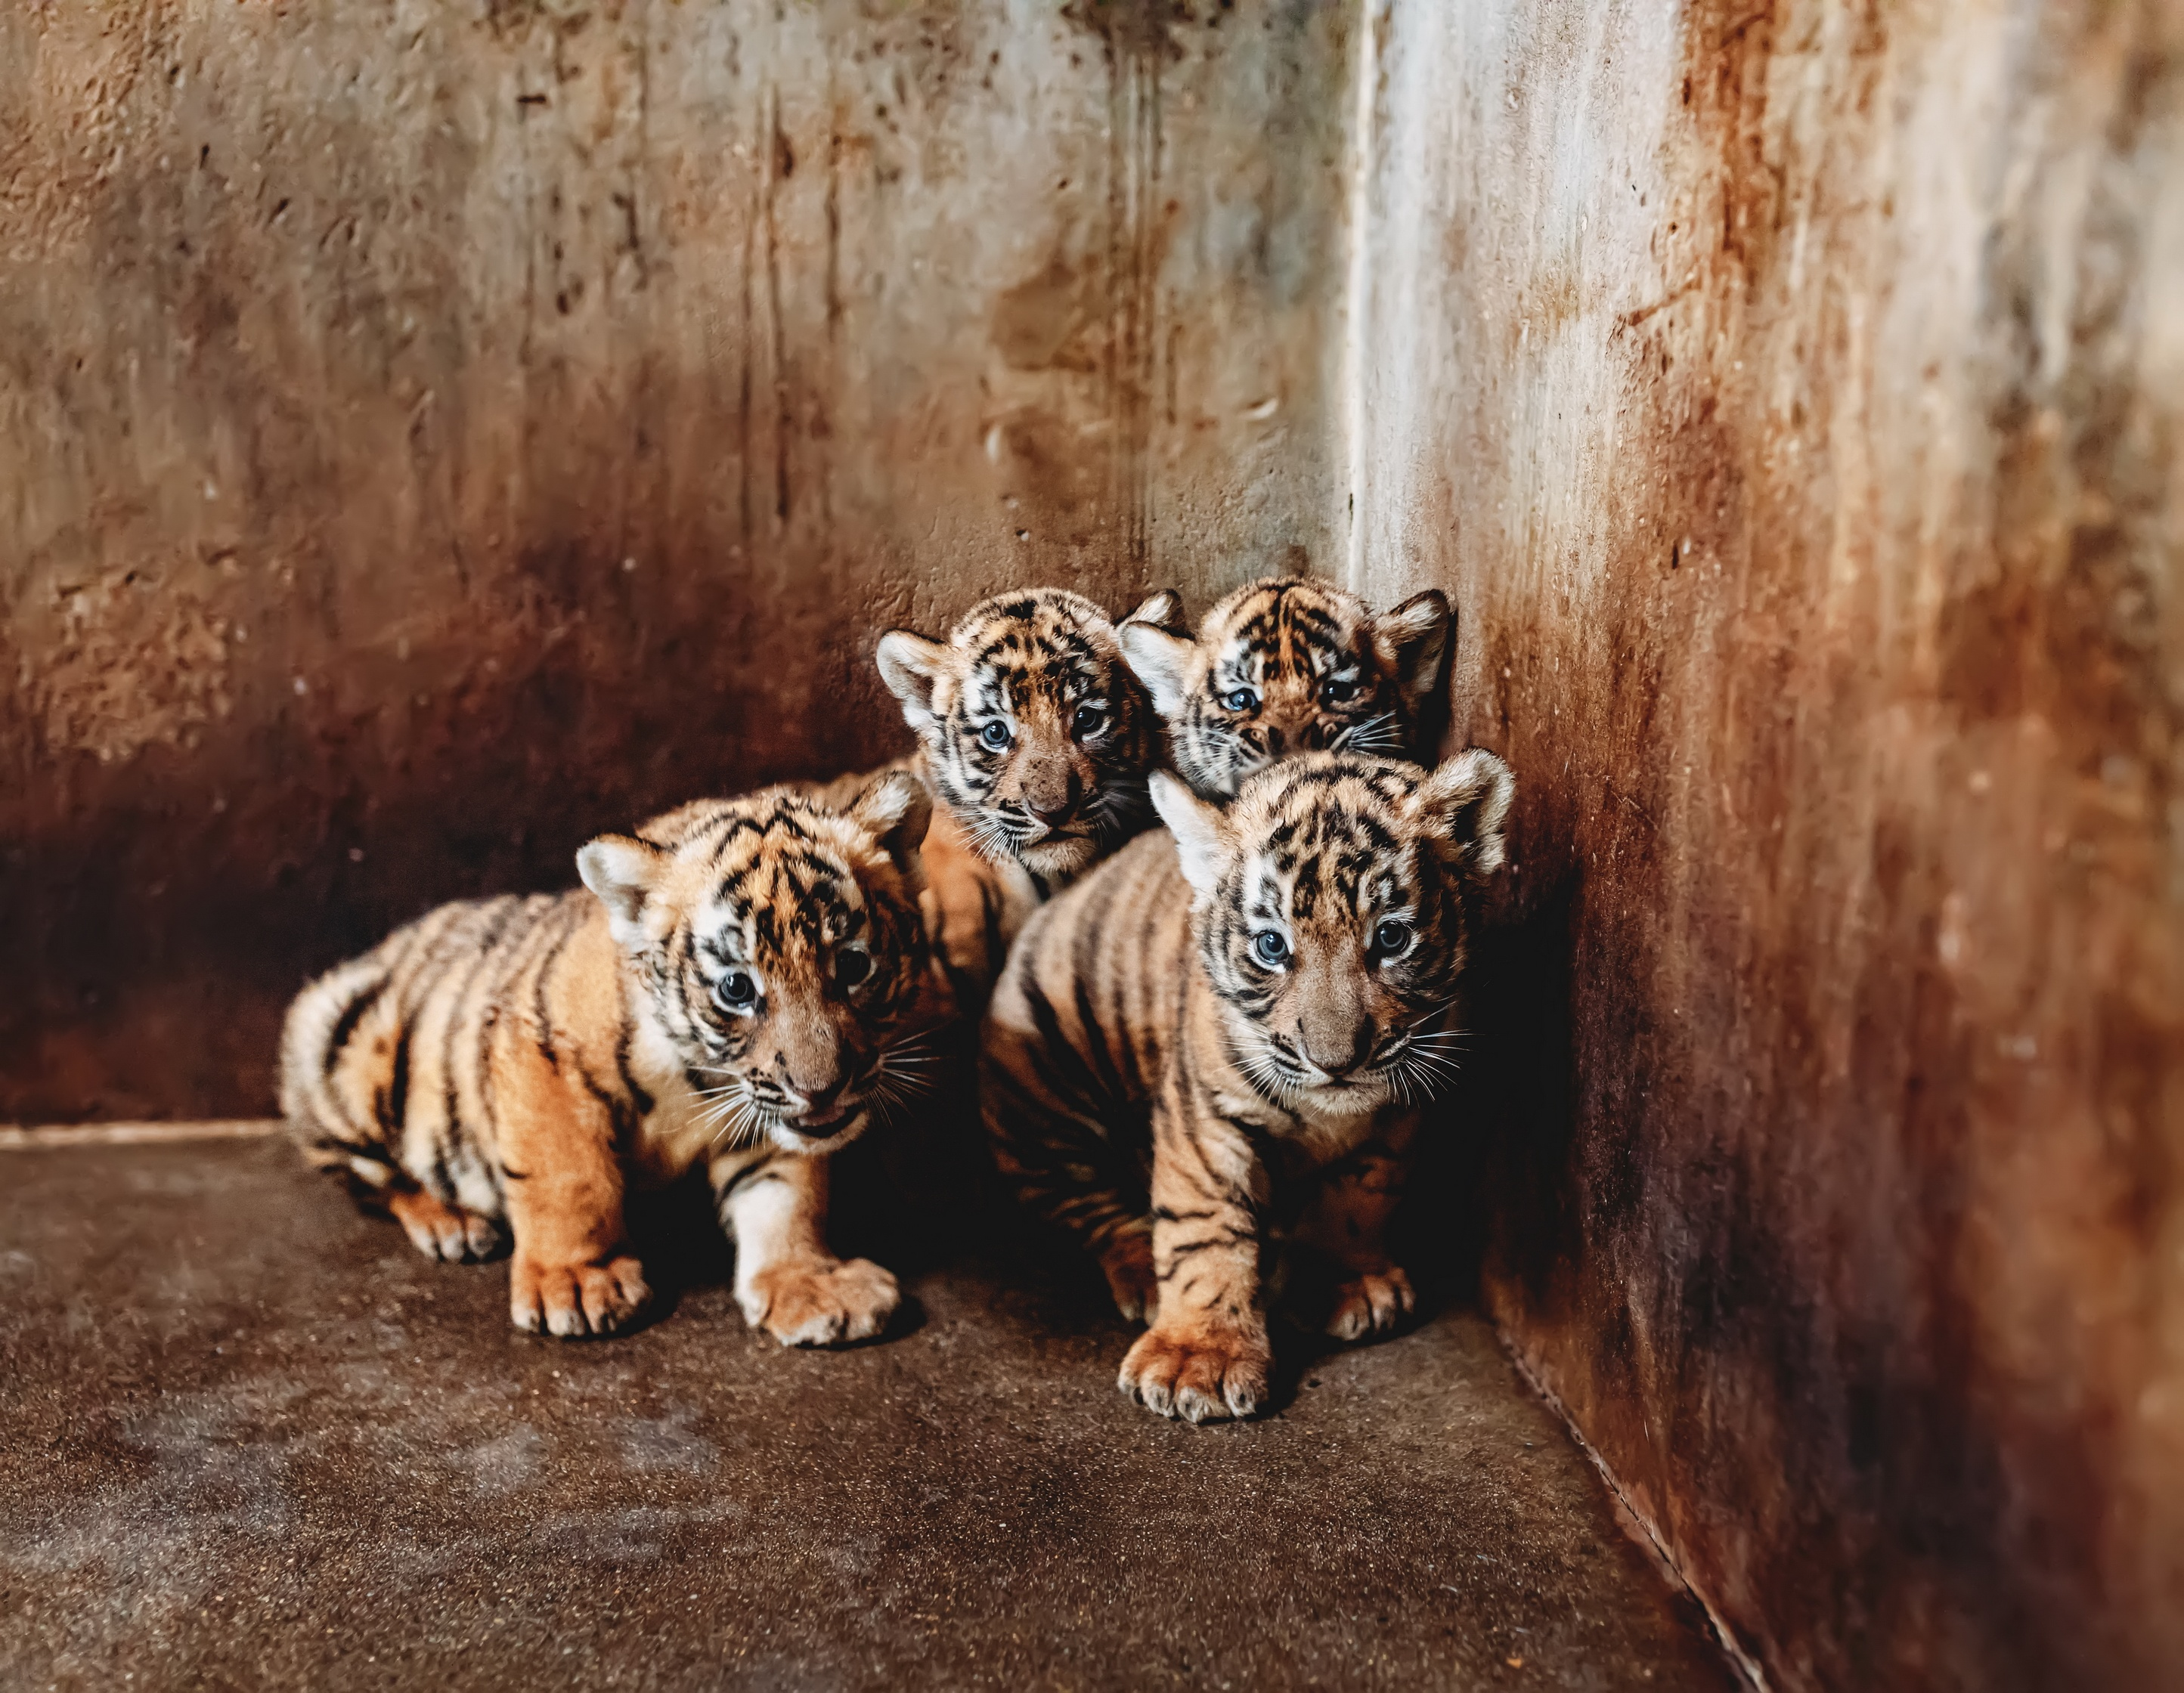 Shanghai Zoo seeks names for four tiger cubs